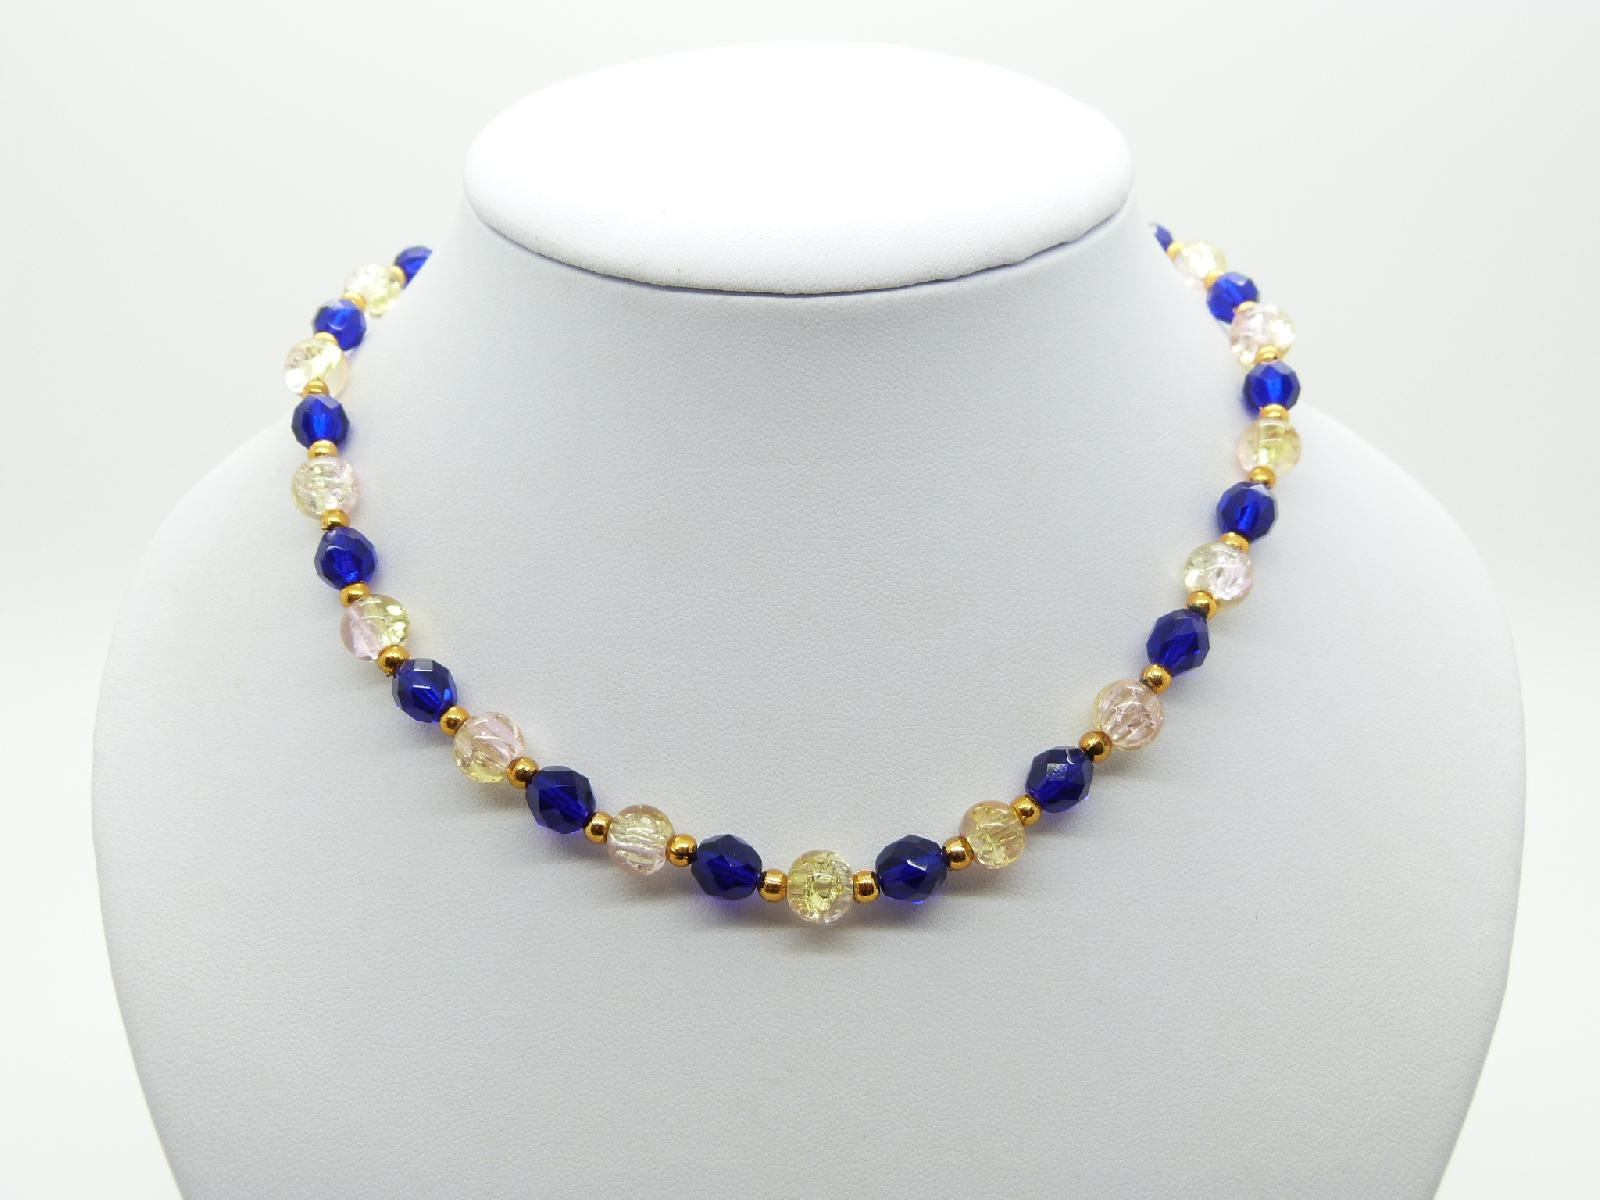 Vintage Redesigned Blue Glass and Crackle Bead Glass Necklace 41cms Long